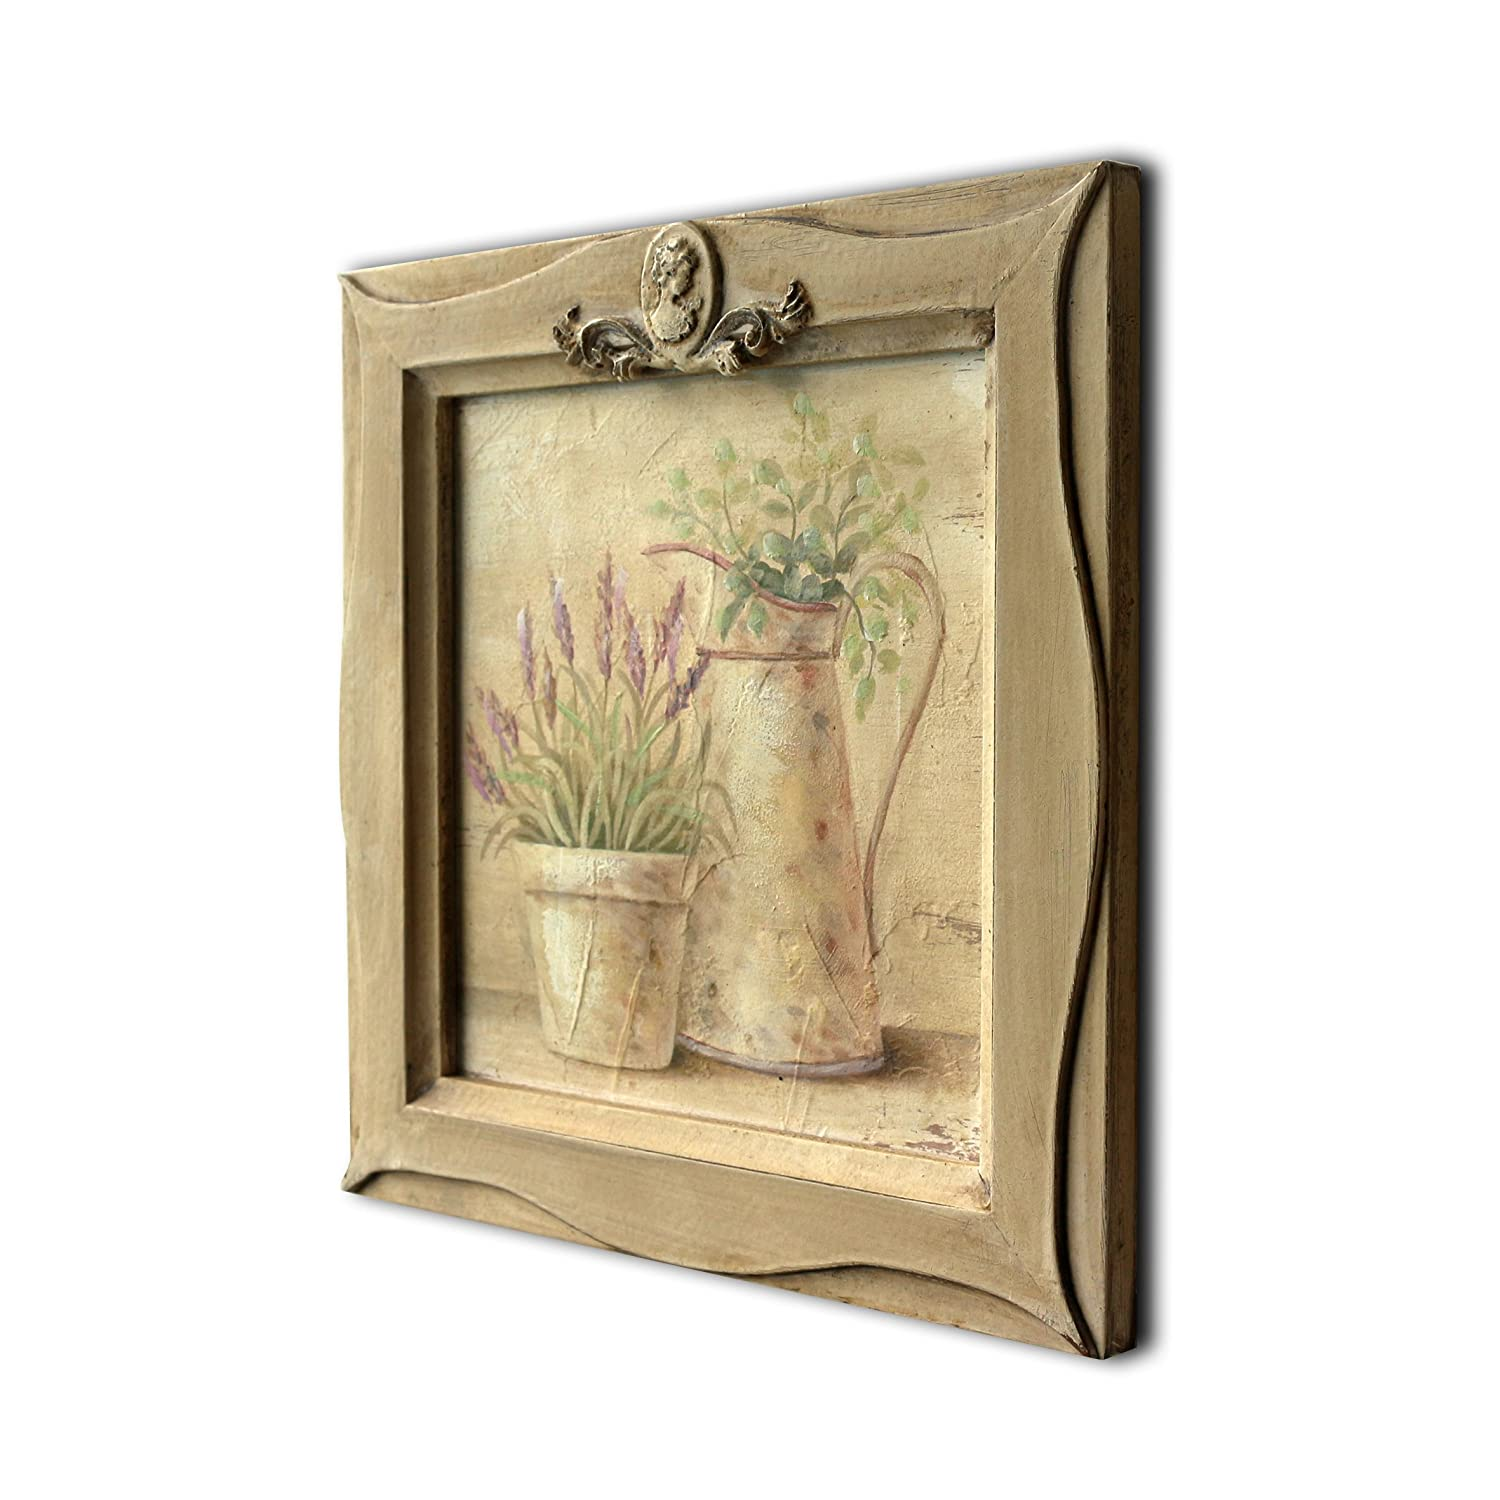 Amazon.com - CVHOMEDECO. Country Vintage Hand Painted Wooden Frame ...